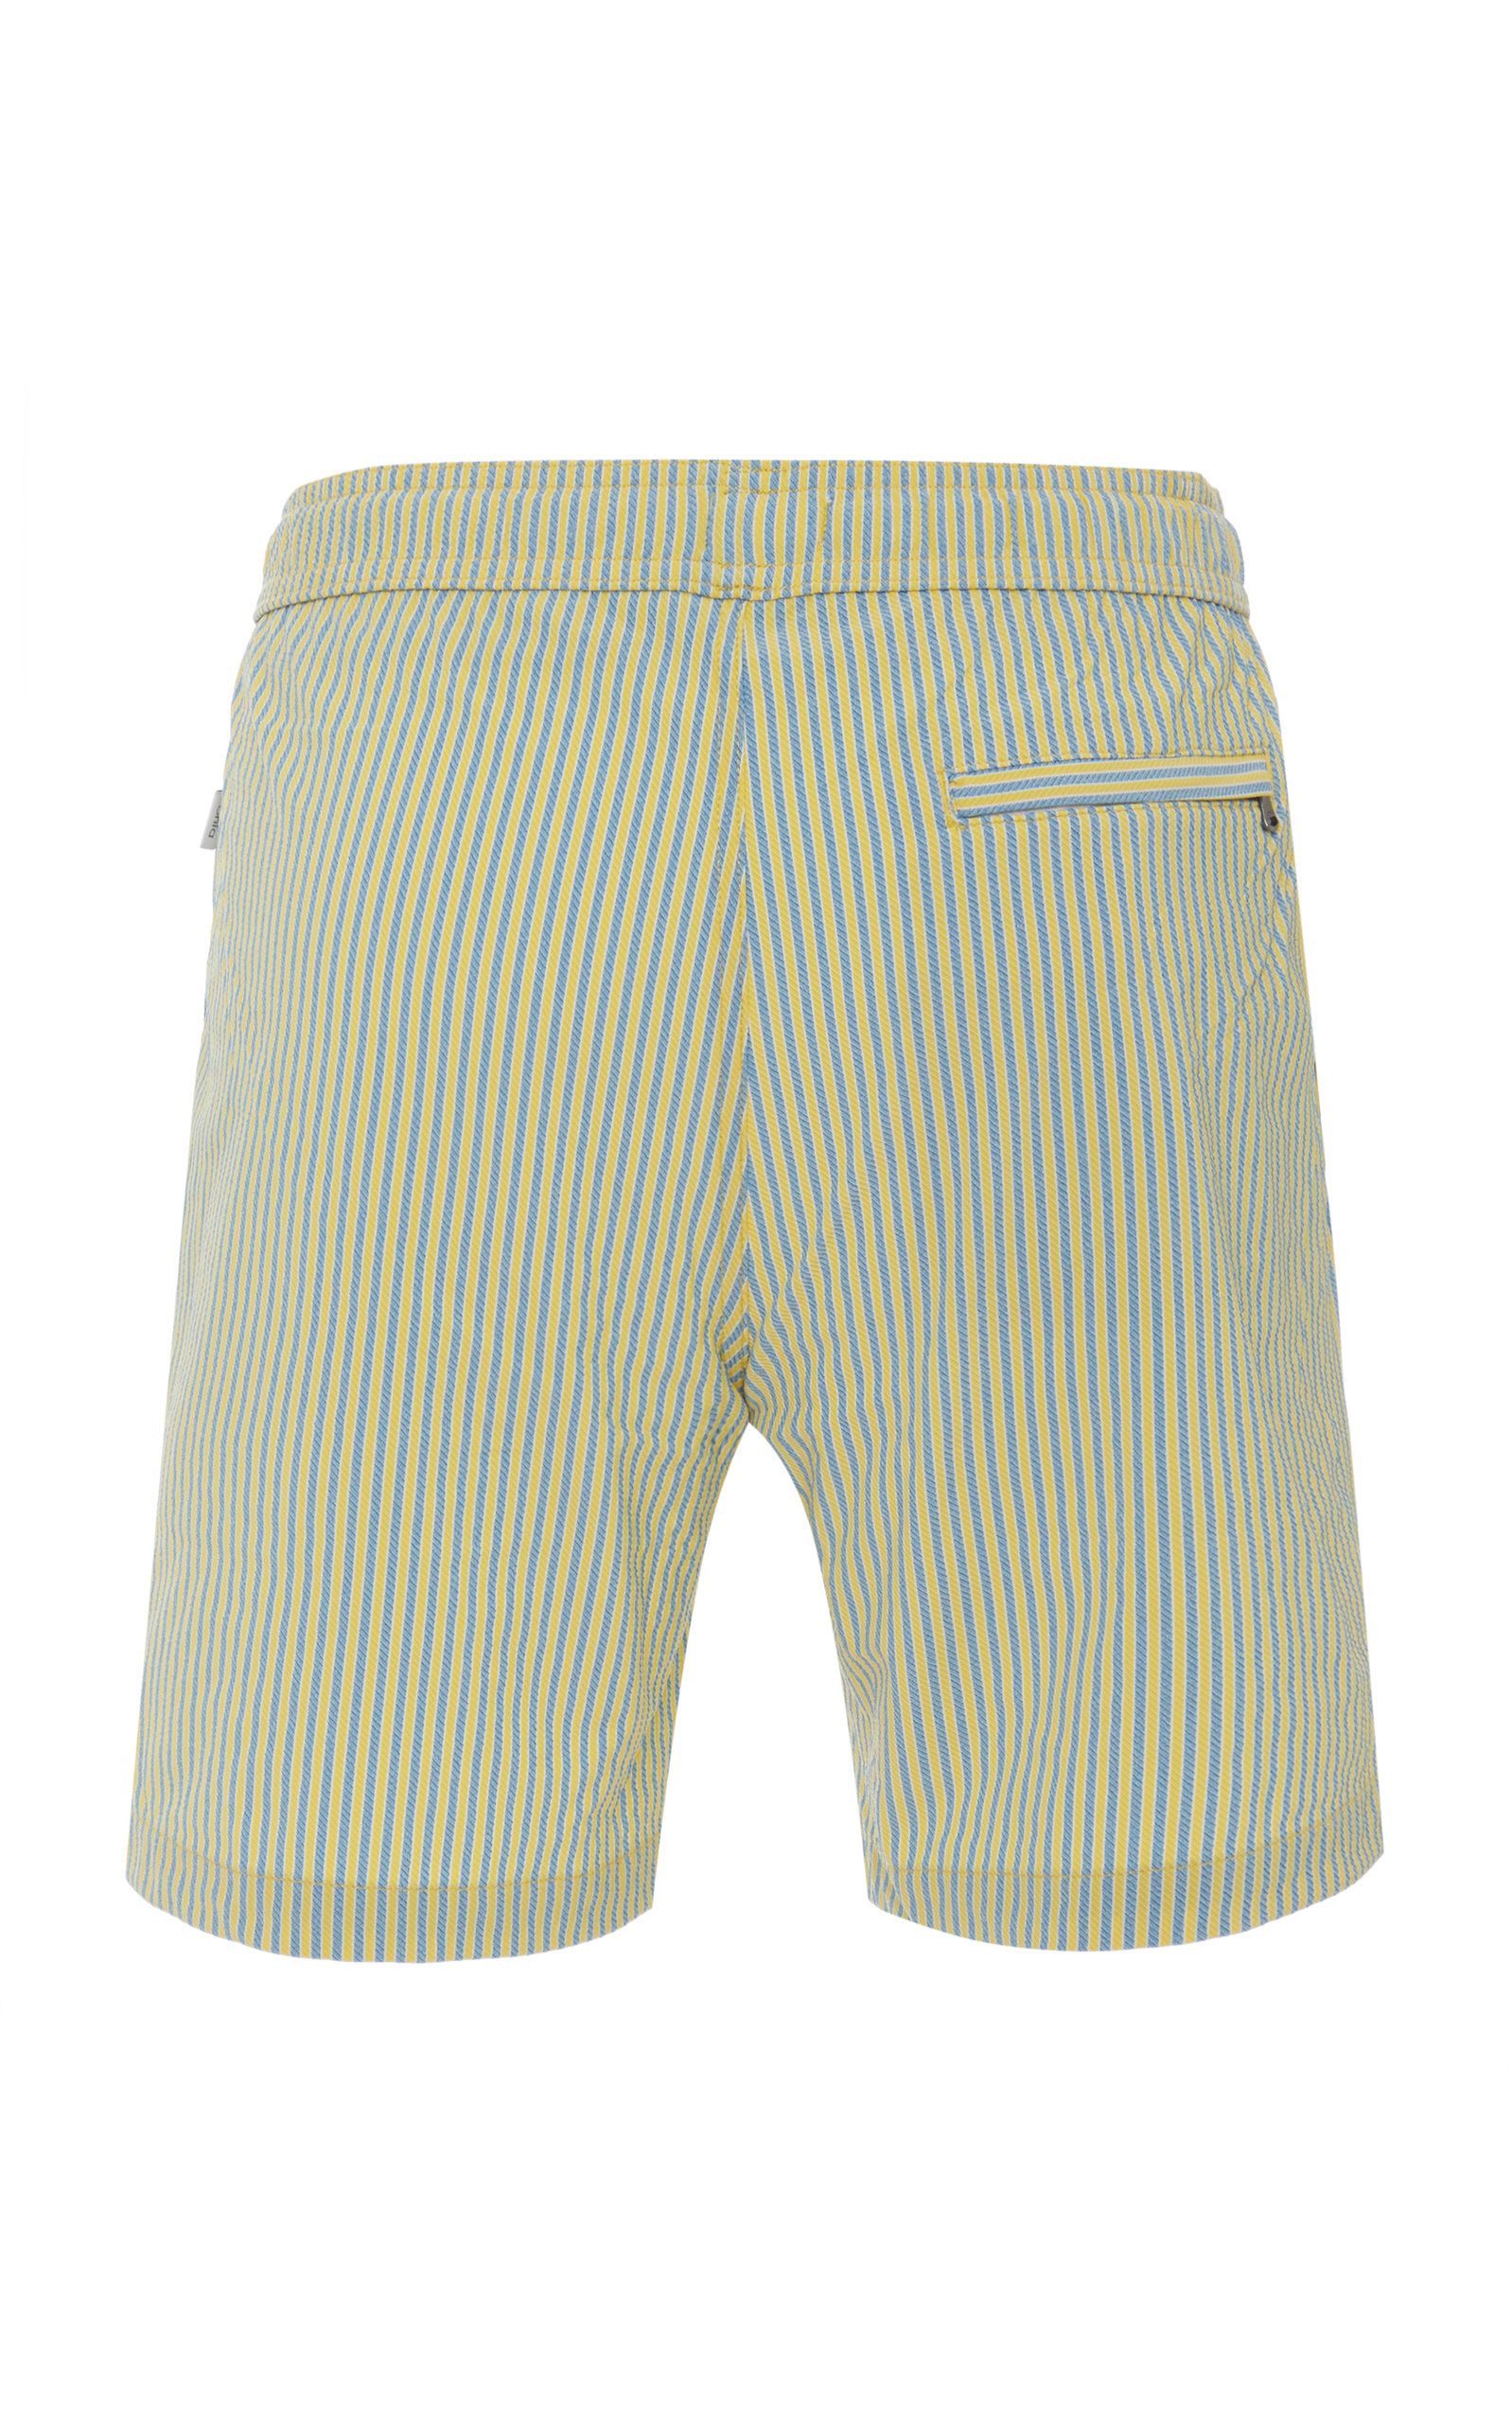 a99307db89 OniaCharles 7 Striped Swim Trunks. CLOSE. Loading. Loading